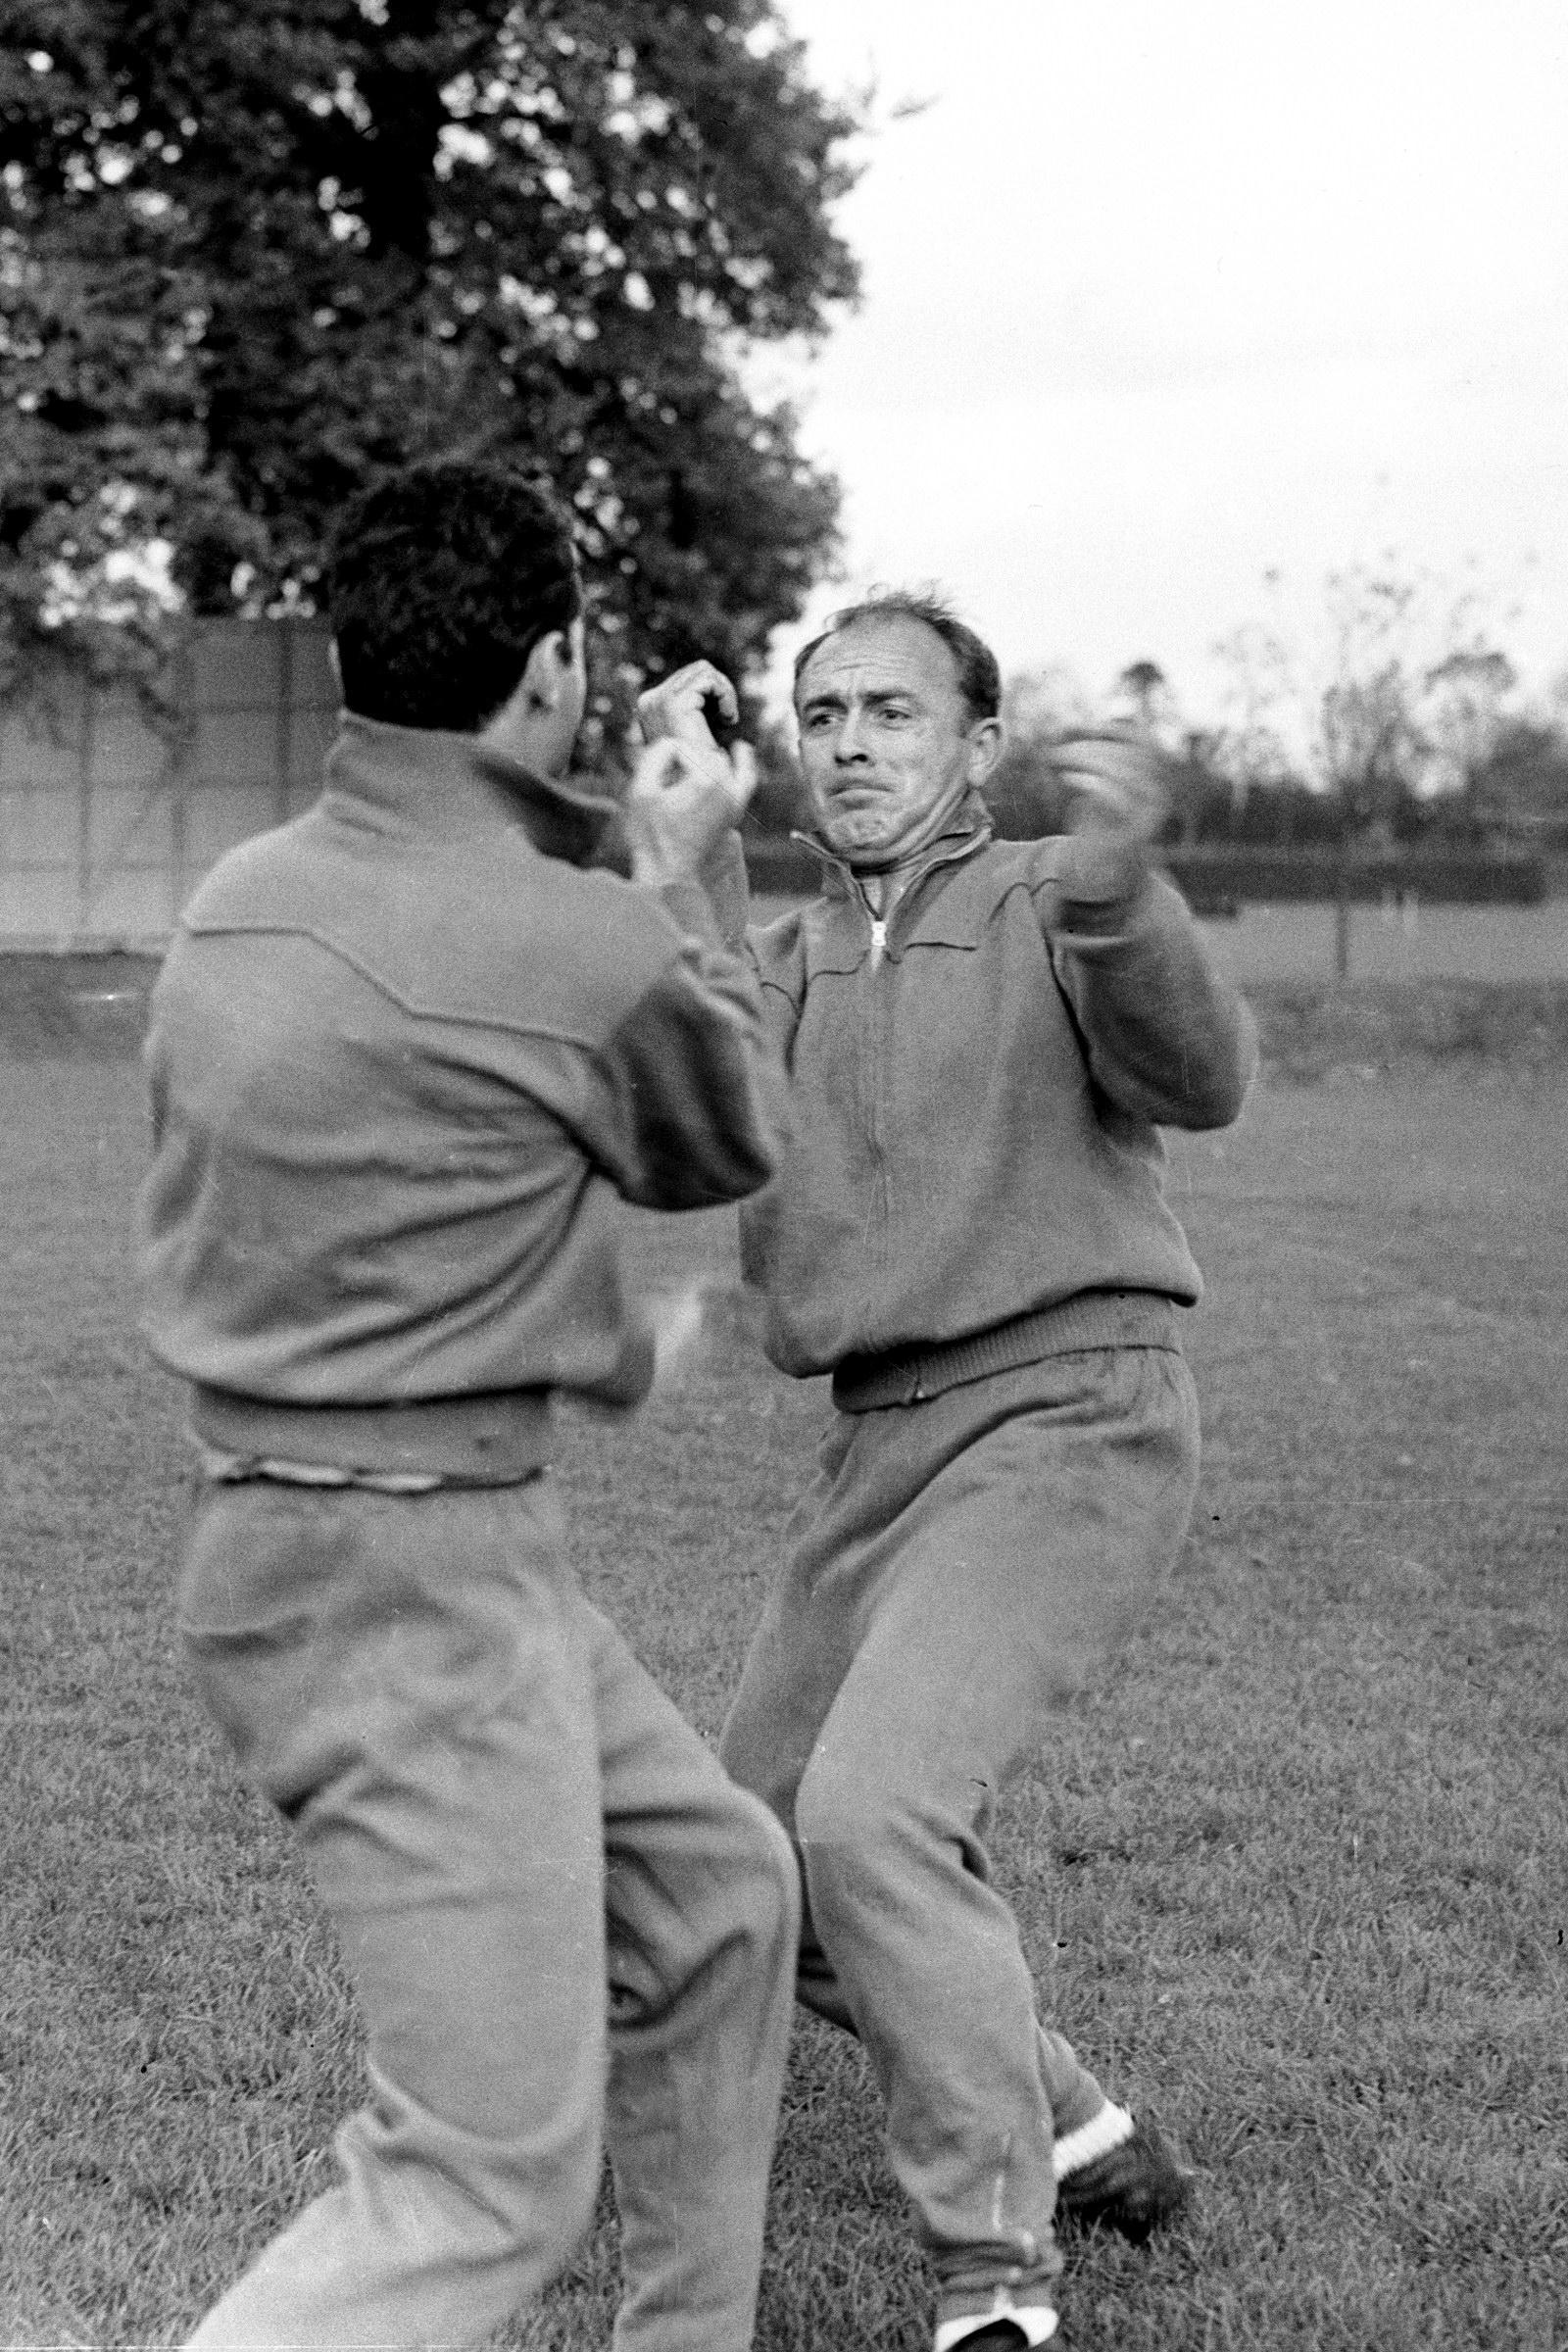 occer - Friendly - England v Spain - Spain Training Spain's Alfredo di Stefano (r) training with his teammates in preparation for the match against England NULL Date: 24/10/1960